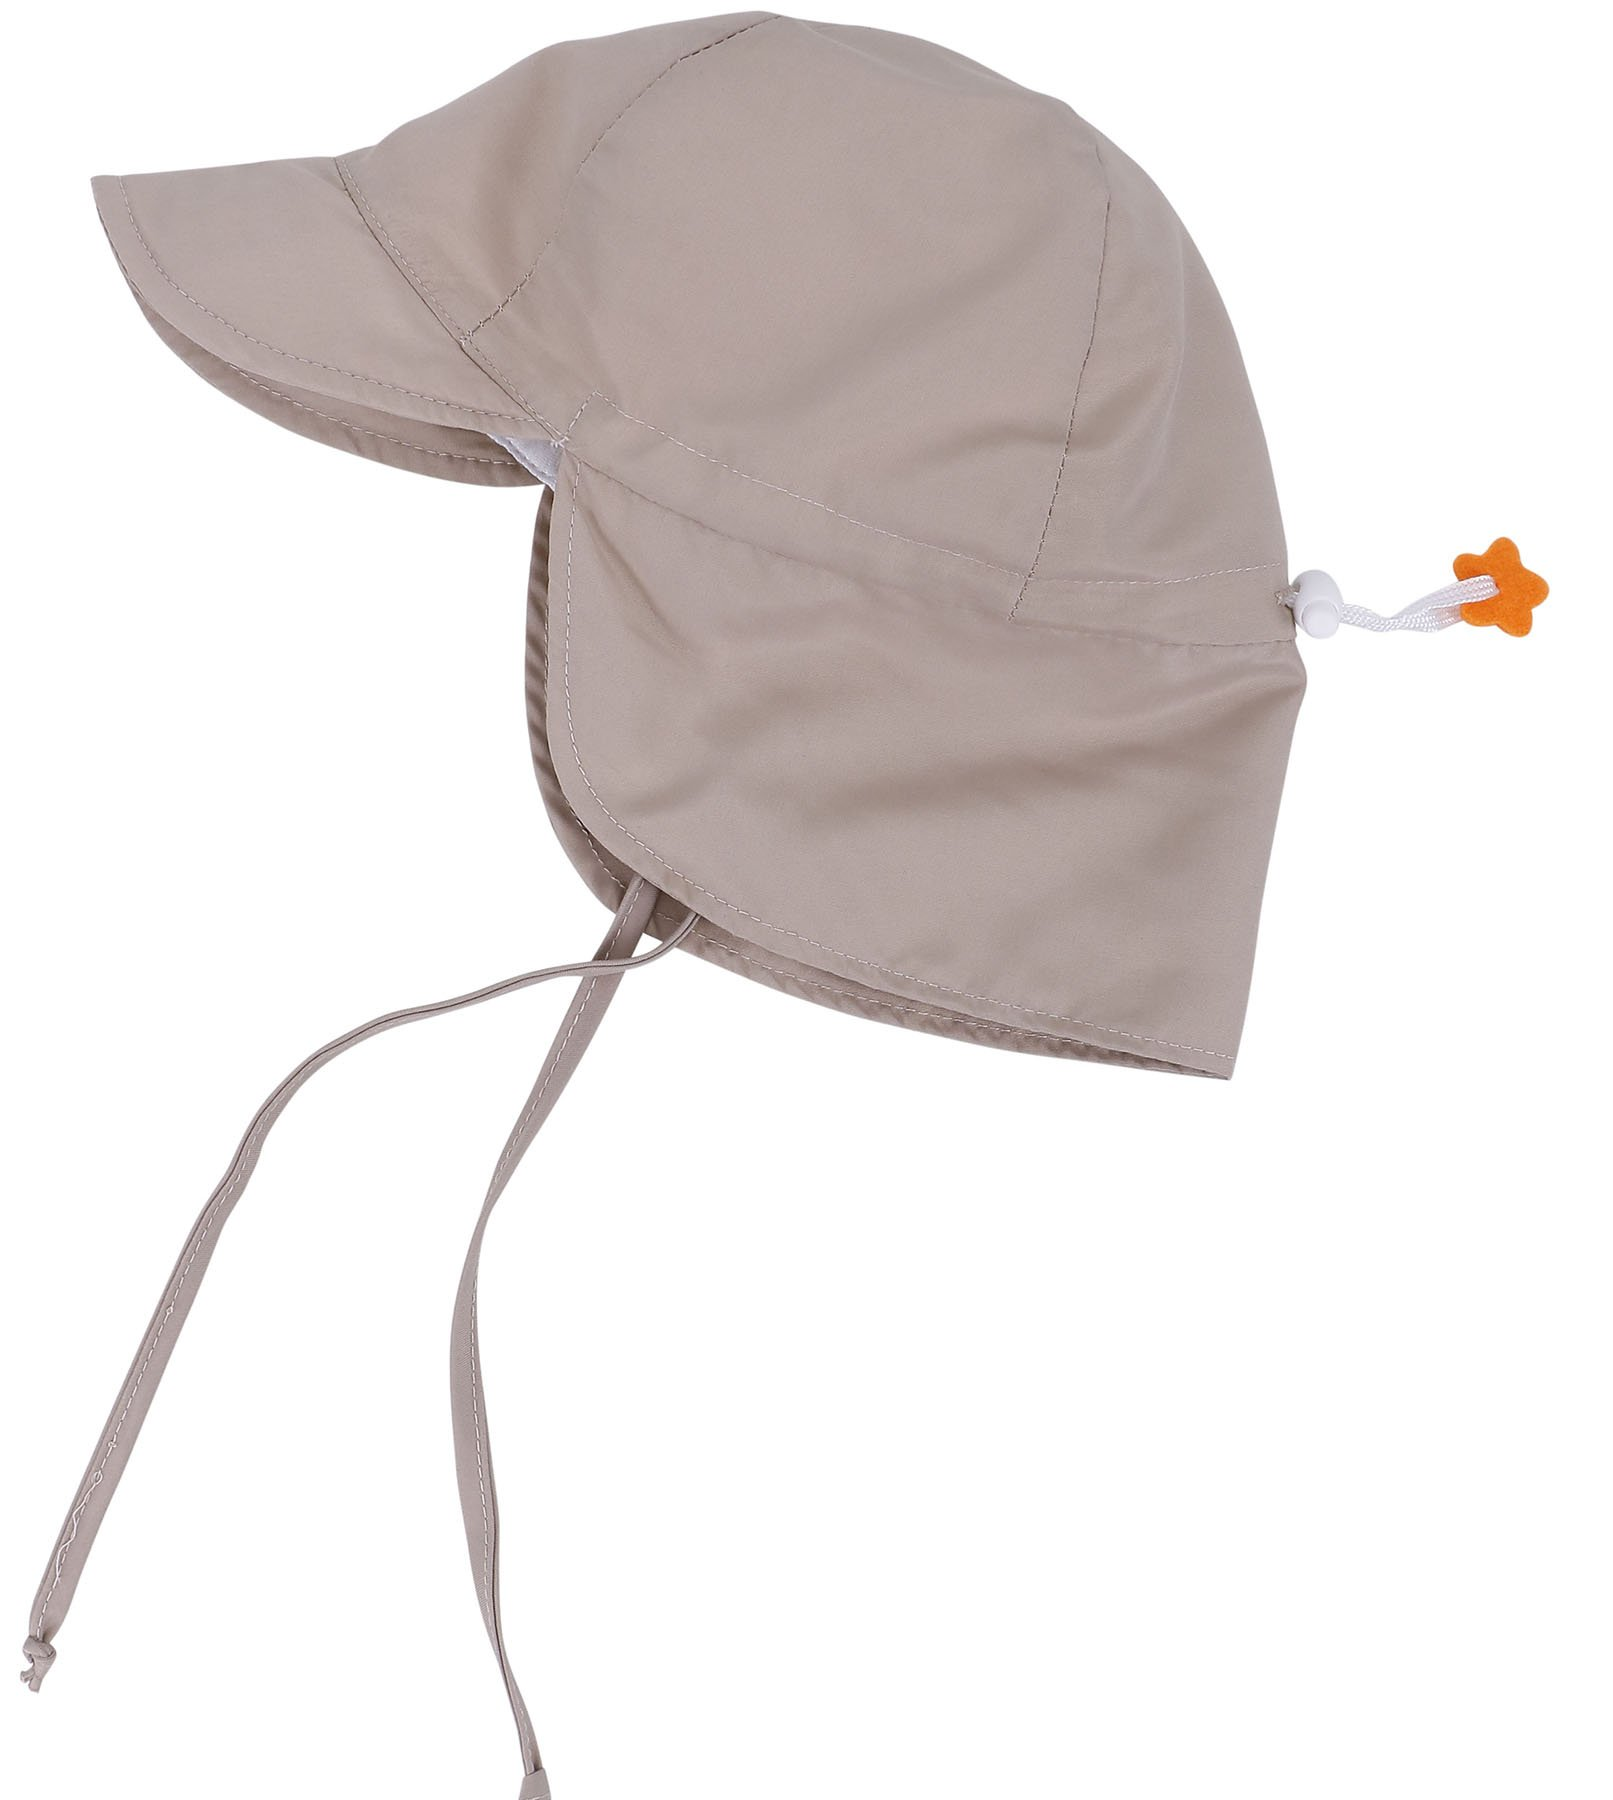 c4cc6af97de NIce Caps Kids and Baby SPF 50+ UV Protection Breathable Sun Hat - 2pc Pack